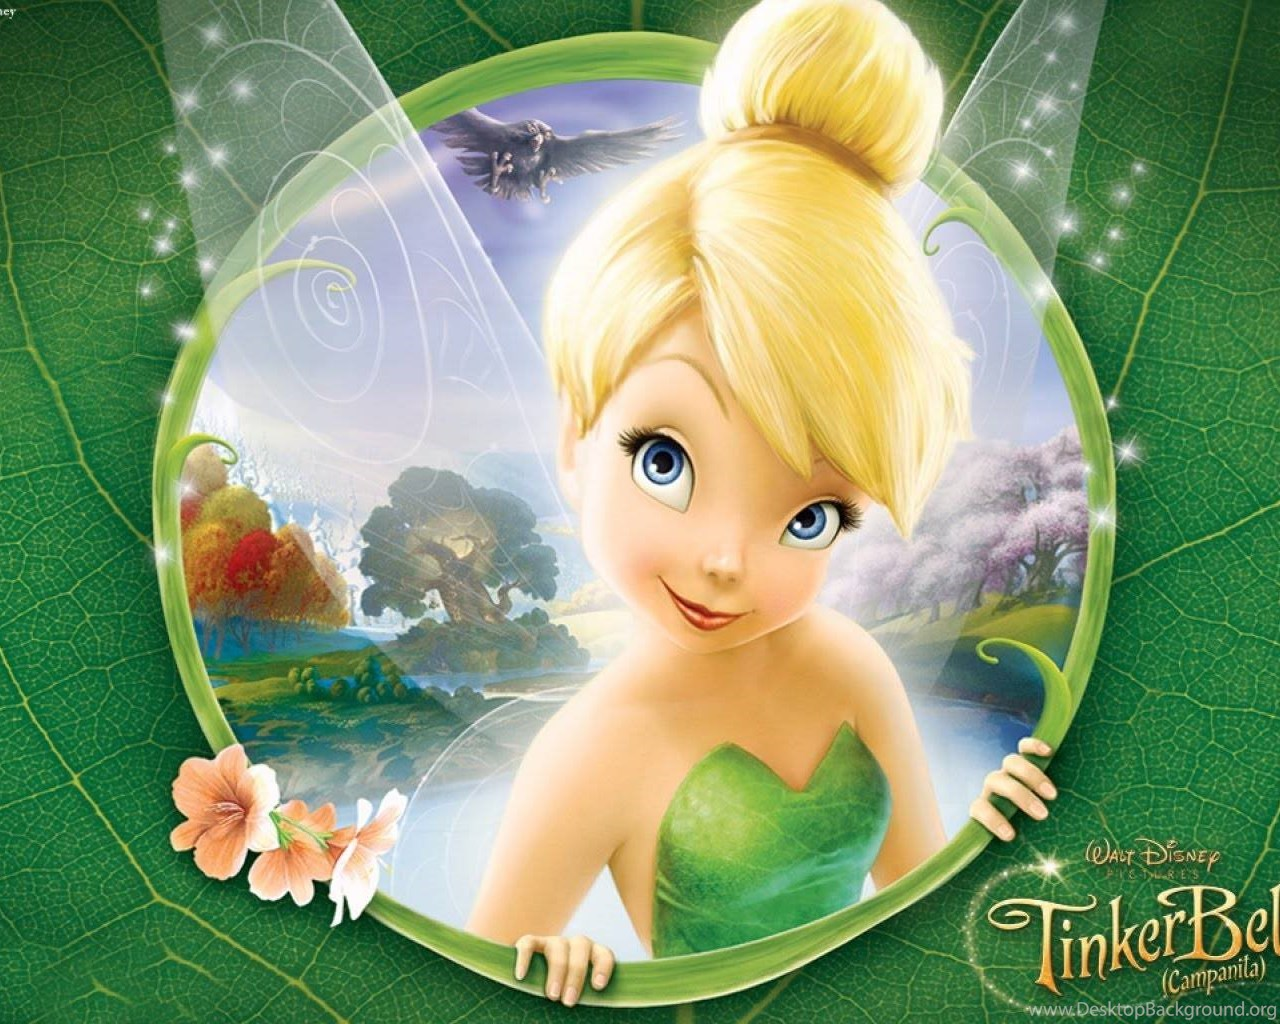 tinkerbell characters wallpaper desktop background